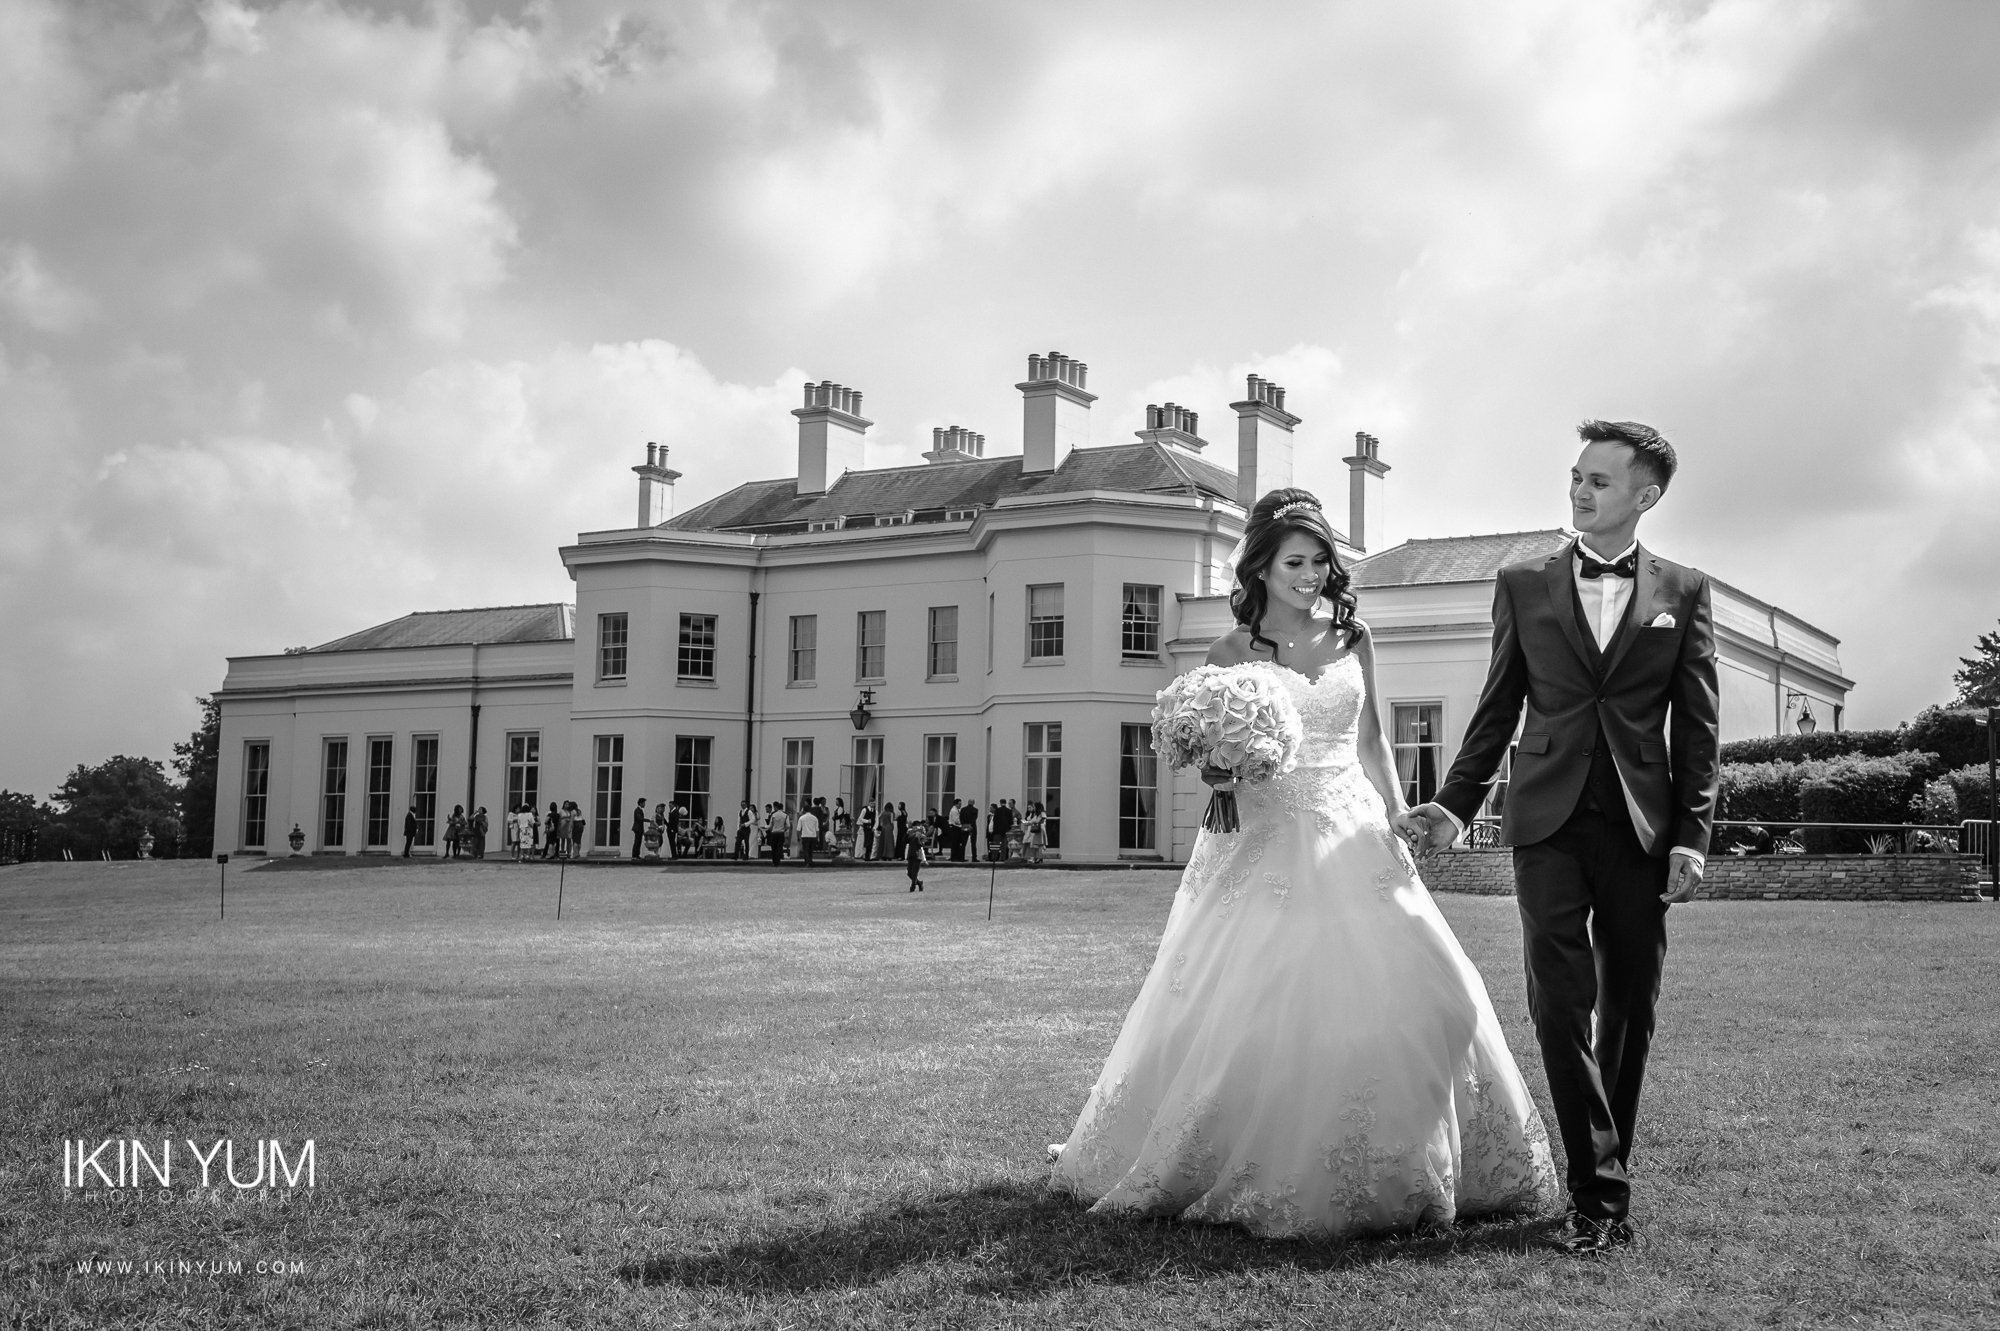 Hylands House Wedding - Ikin Yum Photography-092.jpg